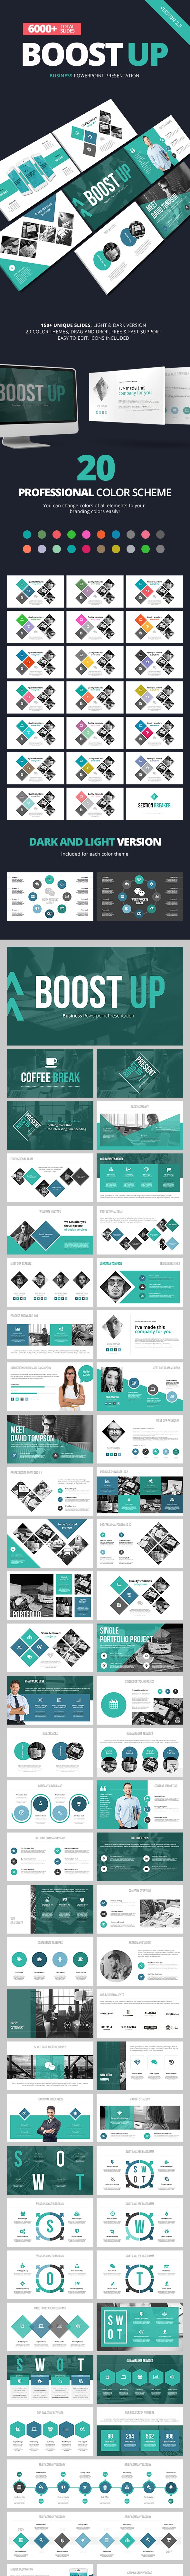 The Powerpoint Bundle - Business PowerPoint Templates